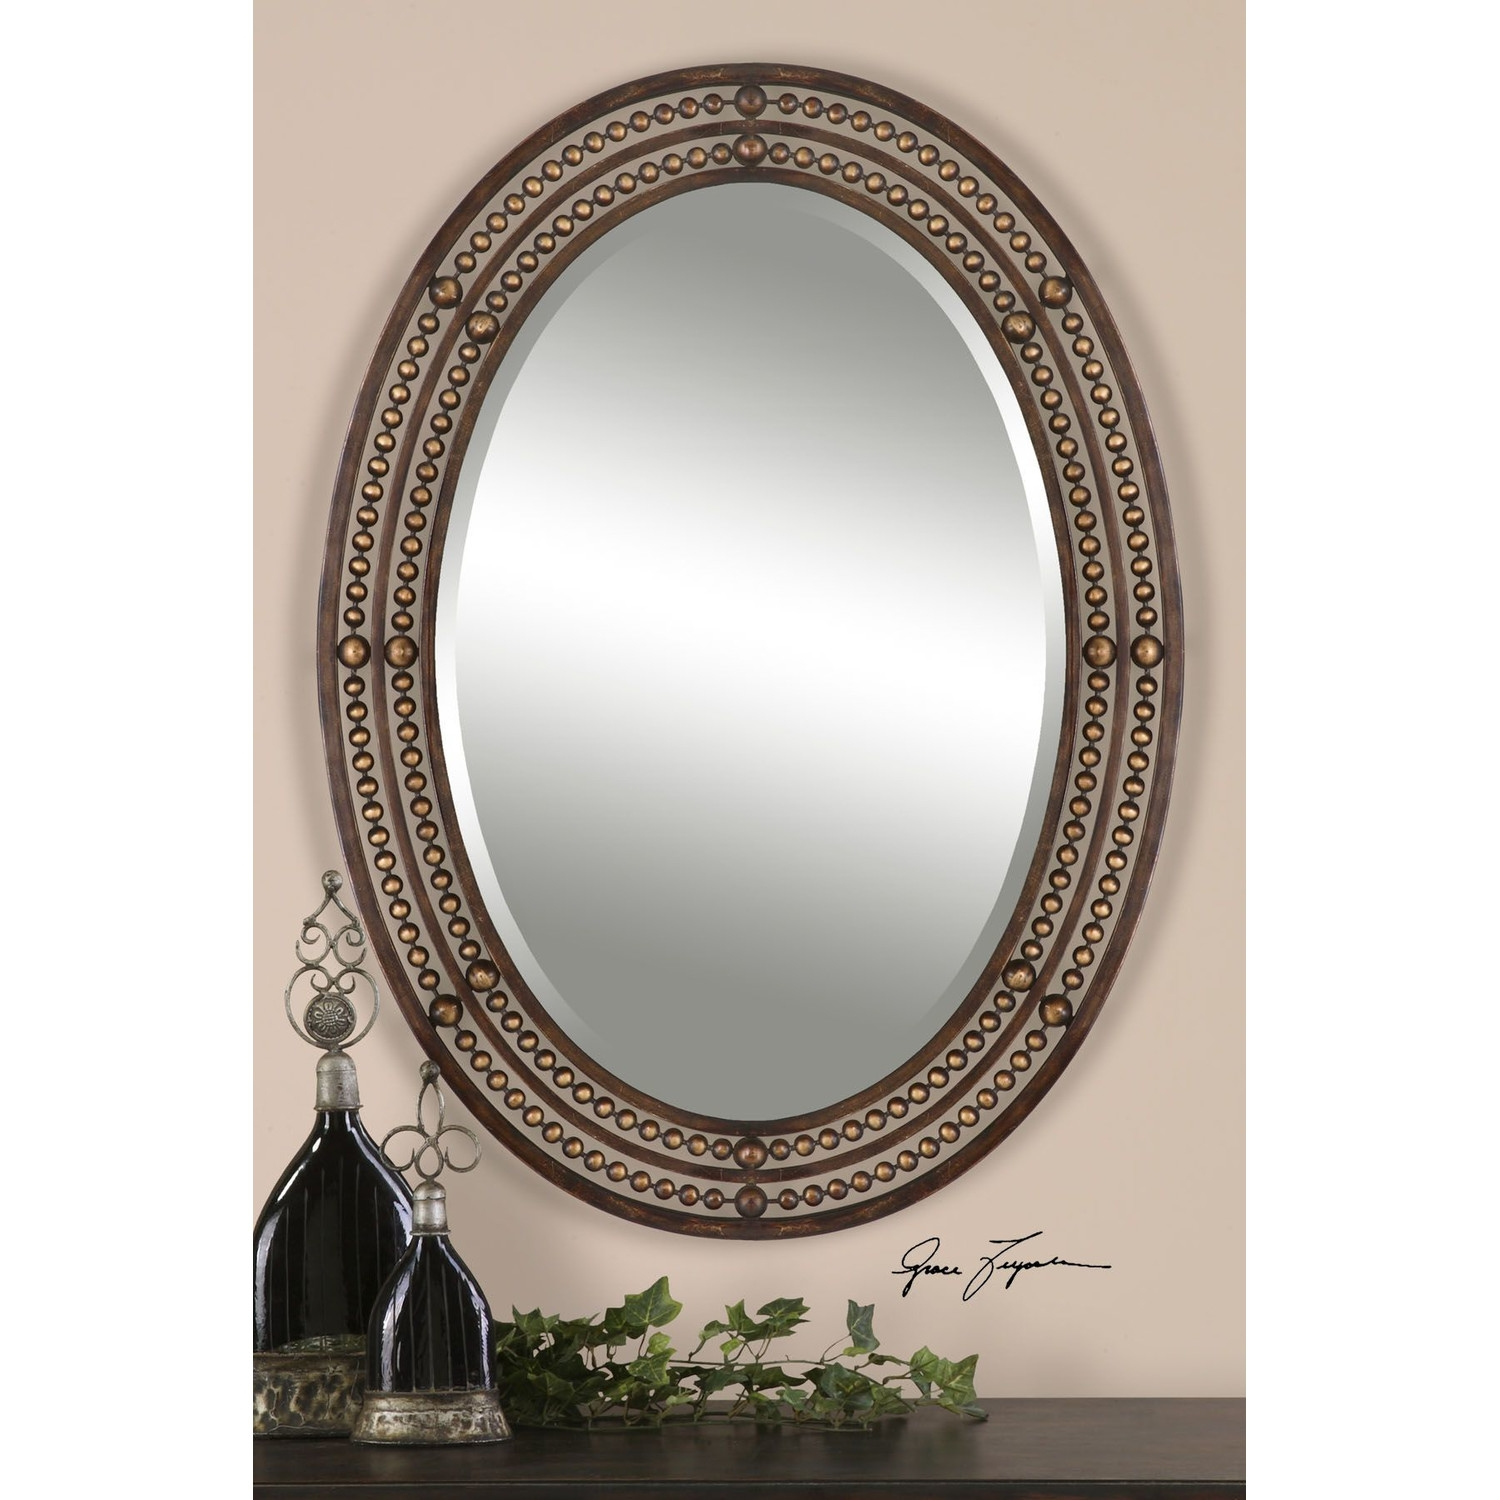 Mirrors For Bathrooms Awesome Mirrors For Bathrooms Led Bathroom With Large Oval Mirrors (Image 7 of 15)